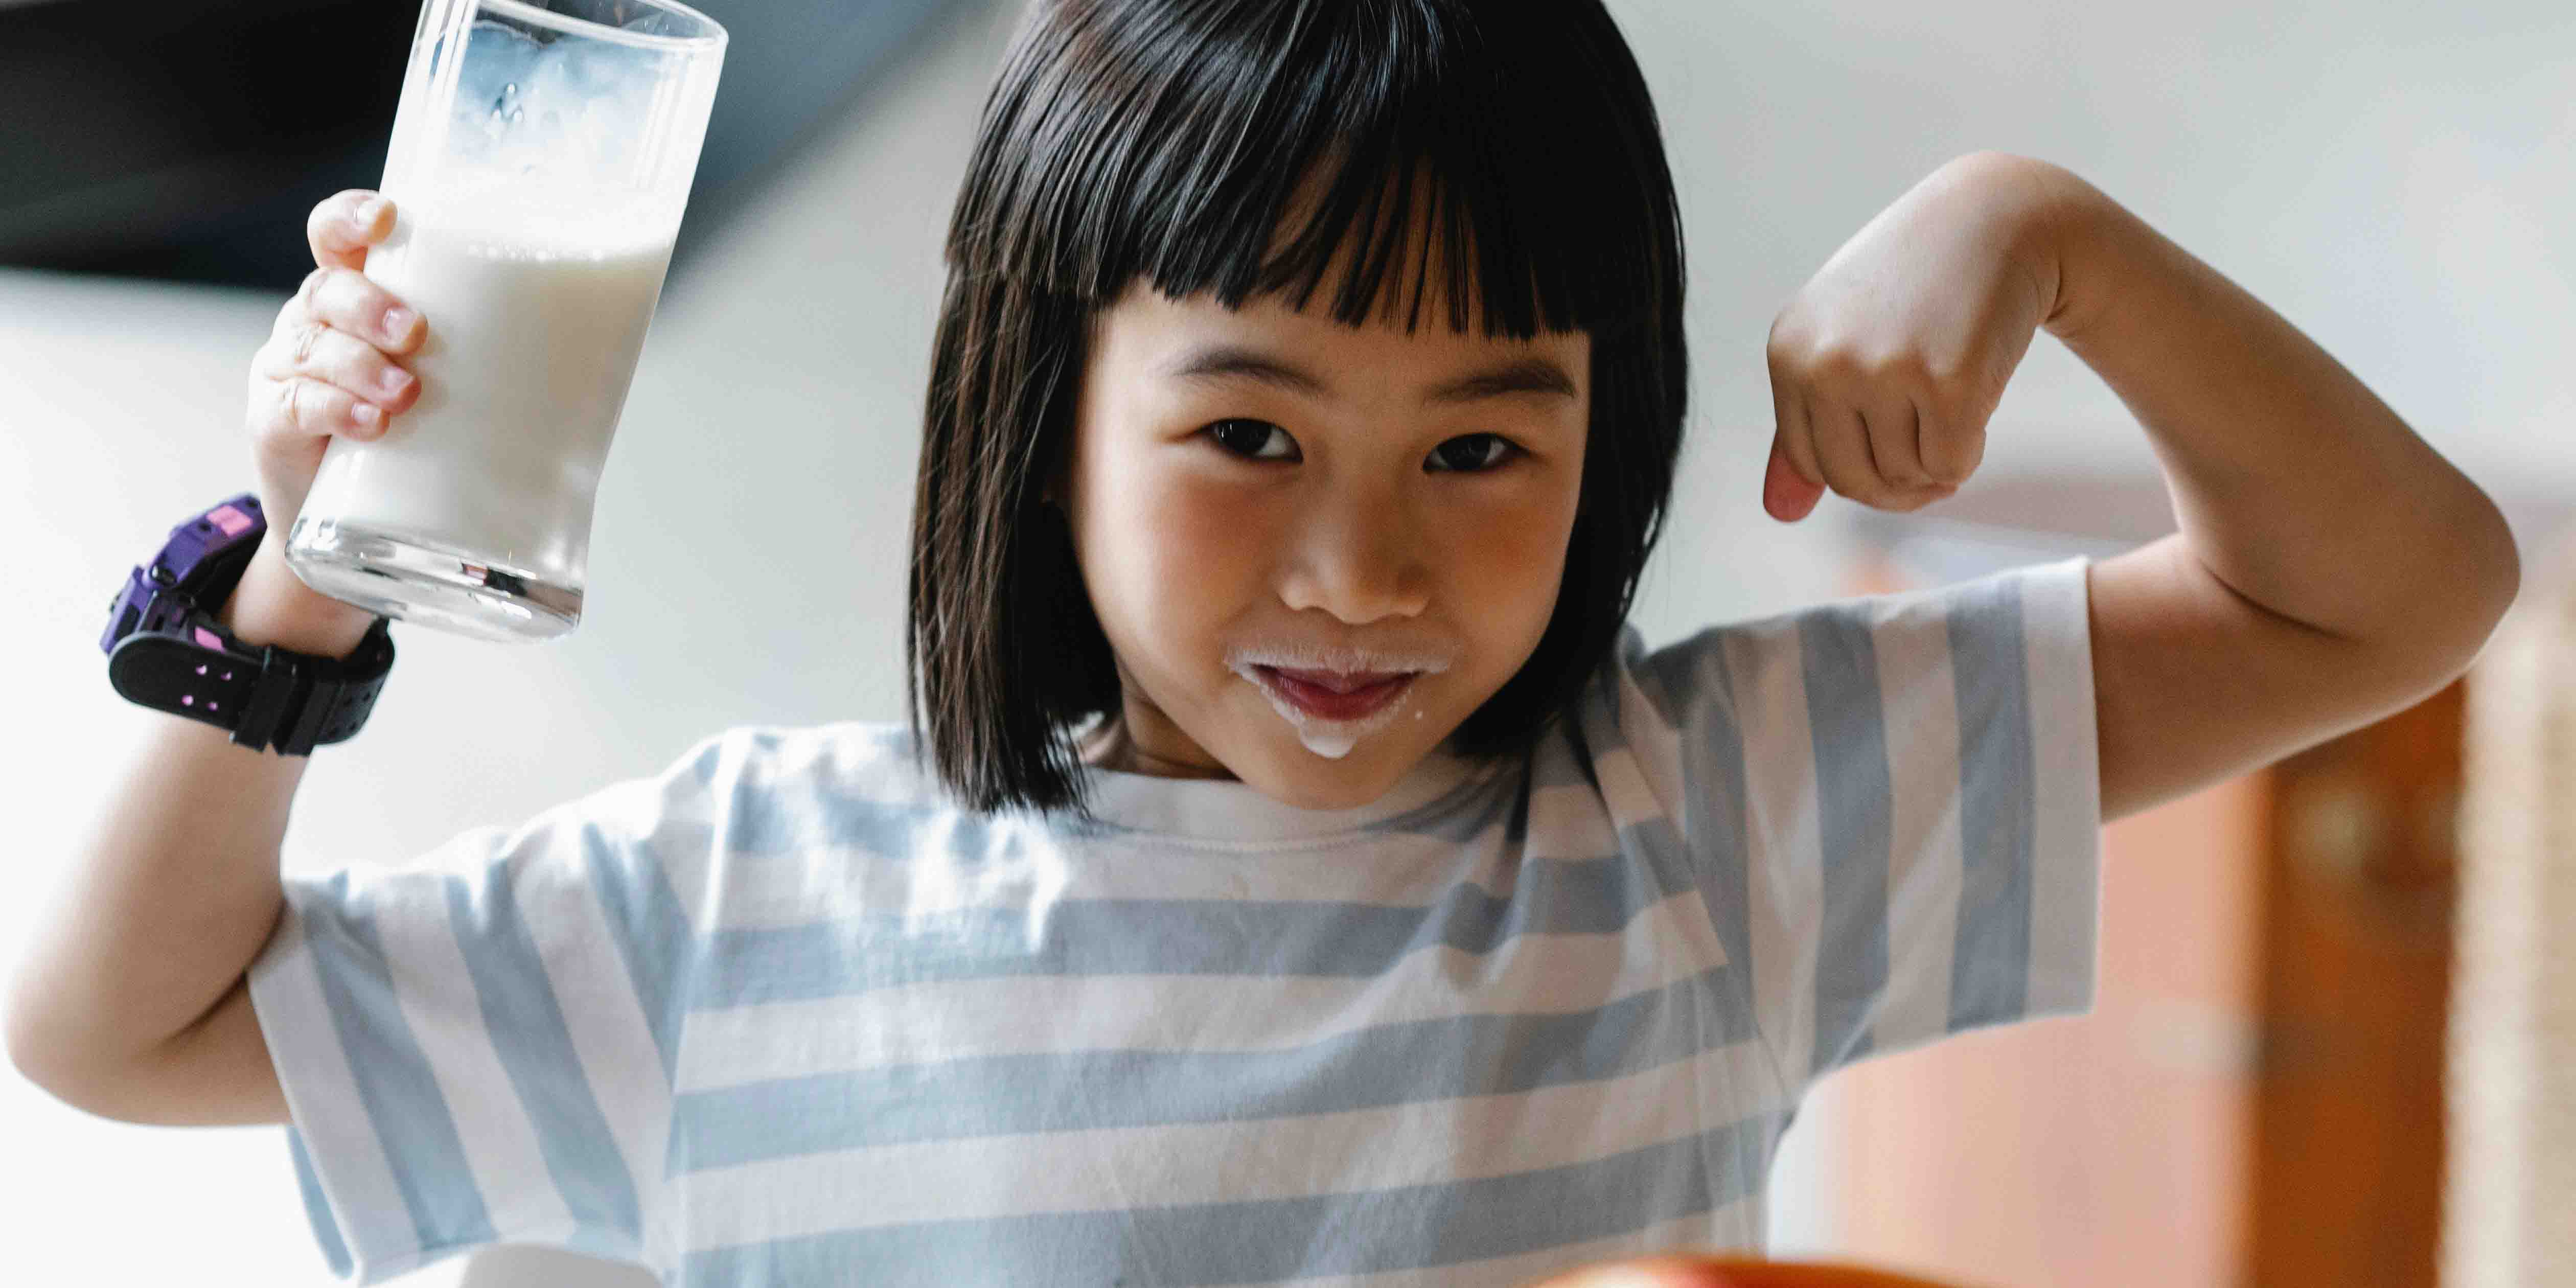 Young child happy drinking milk for bone support calcium